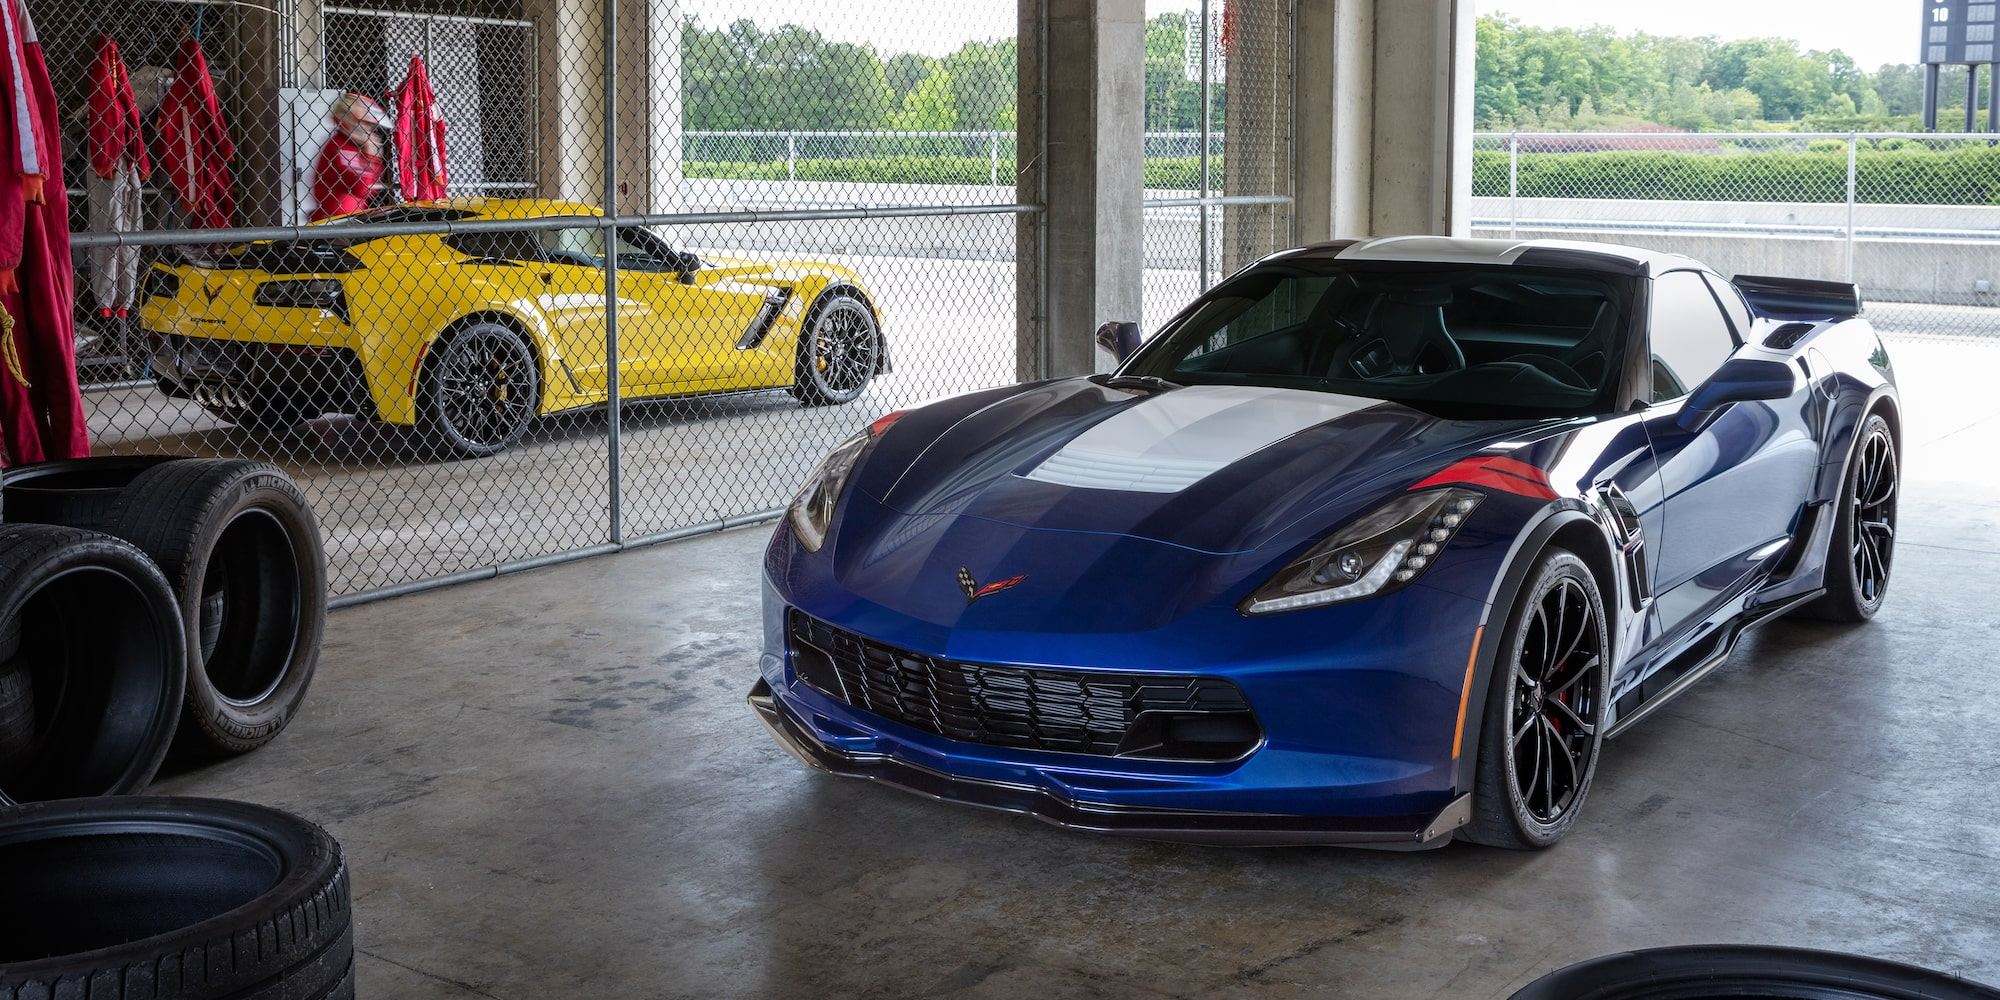 2017 Corvette Grand Sport: Sports Car, Chevrolet